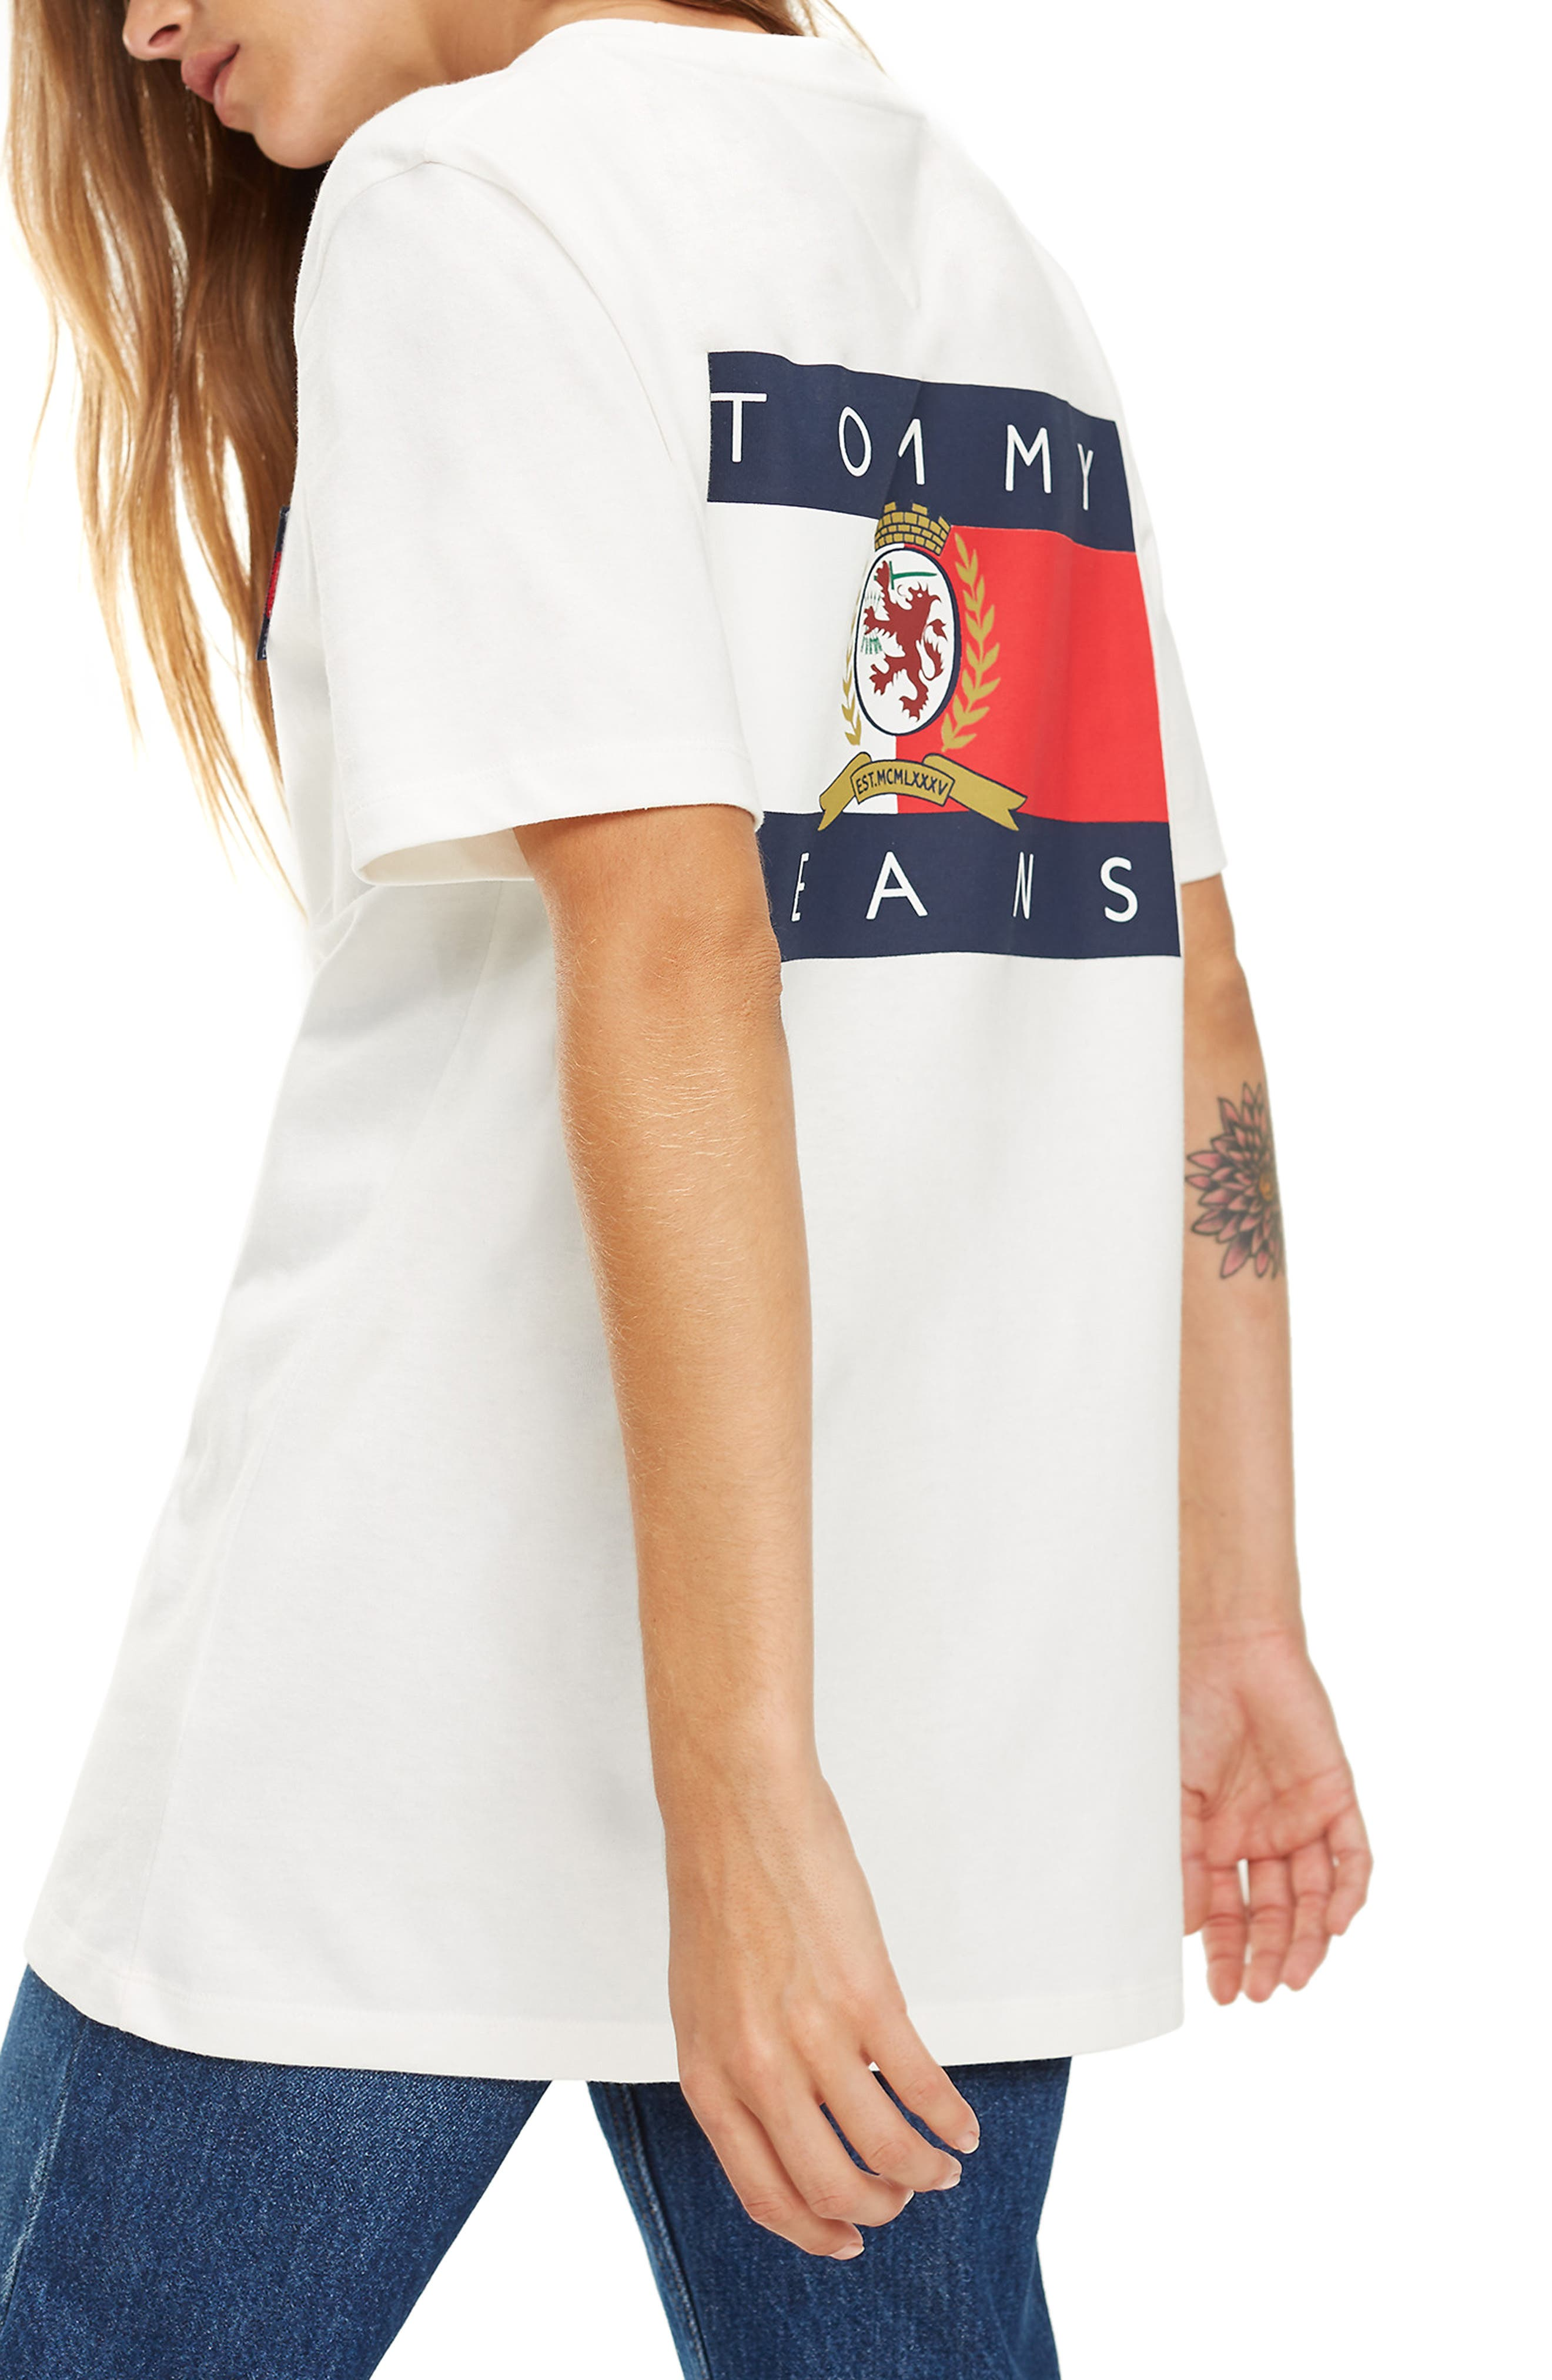 TOMMY JEANS,                             Crest Capsule Flag Tee,                             Alternate thumbnail 2, color,                             100